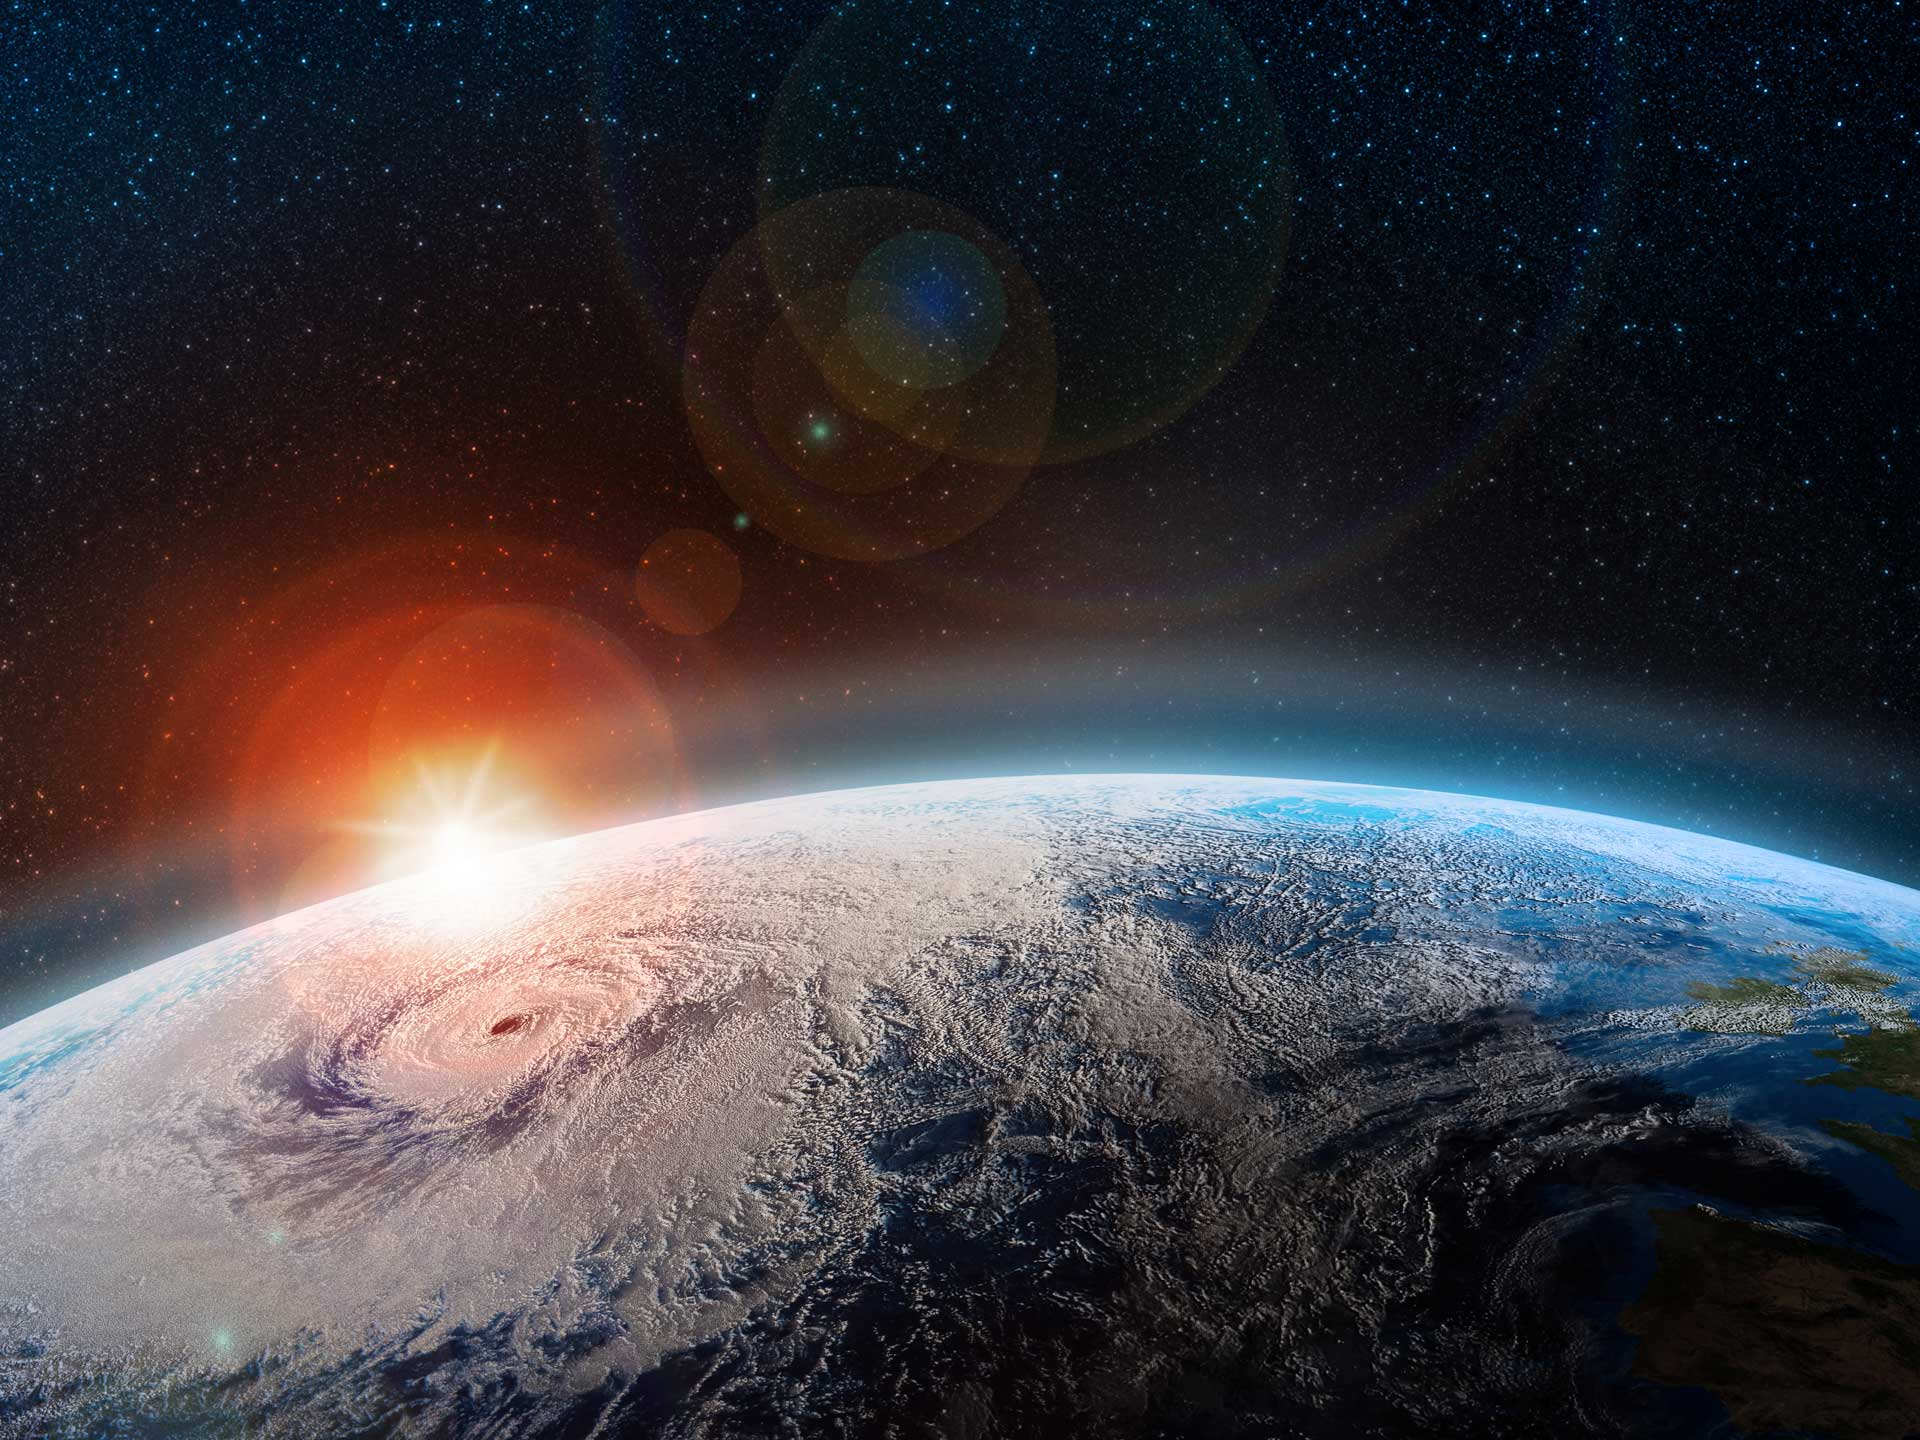 Greenhouse gases shrinking the stratosphere, a new study finds